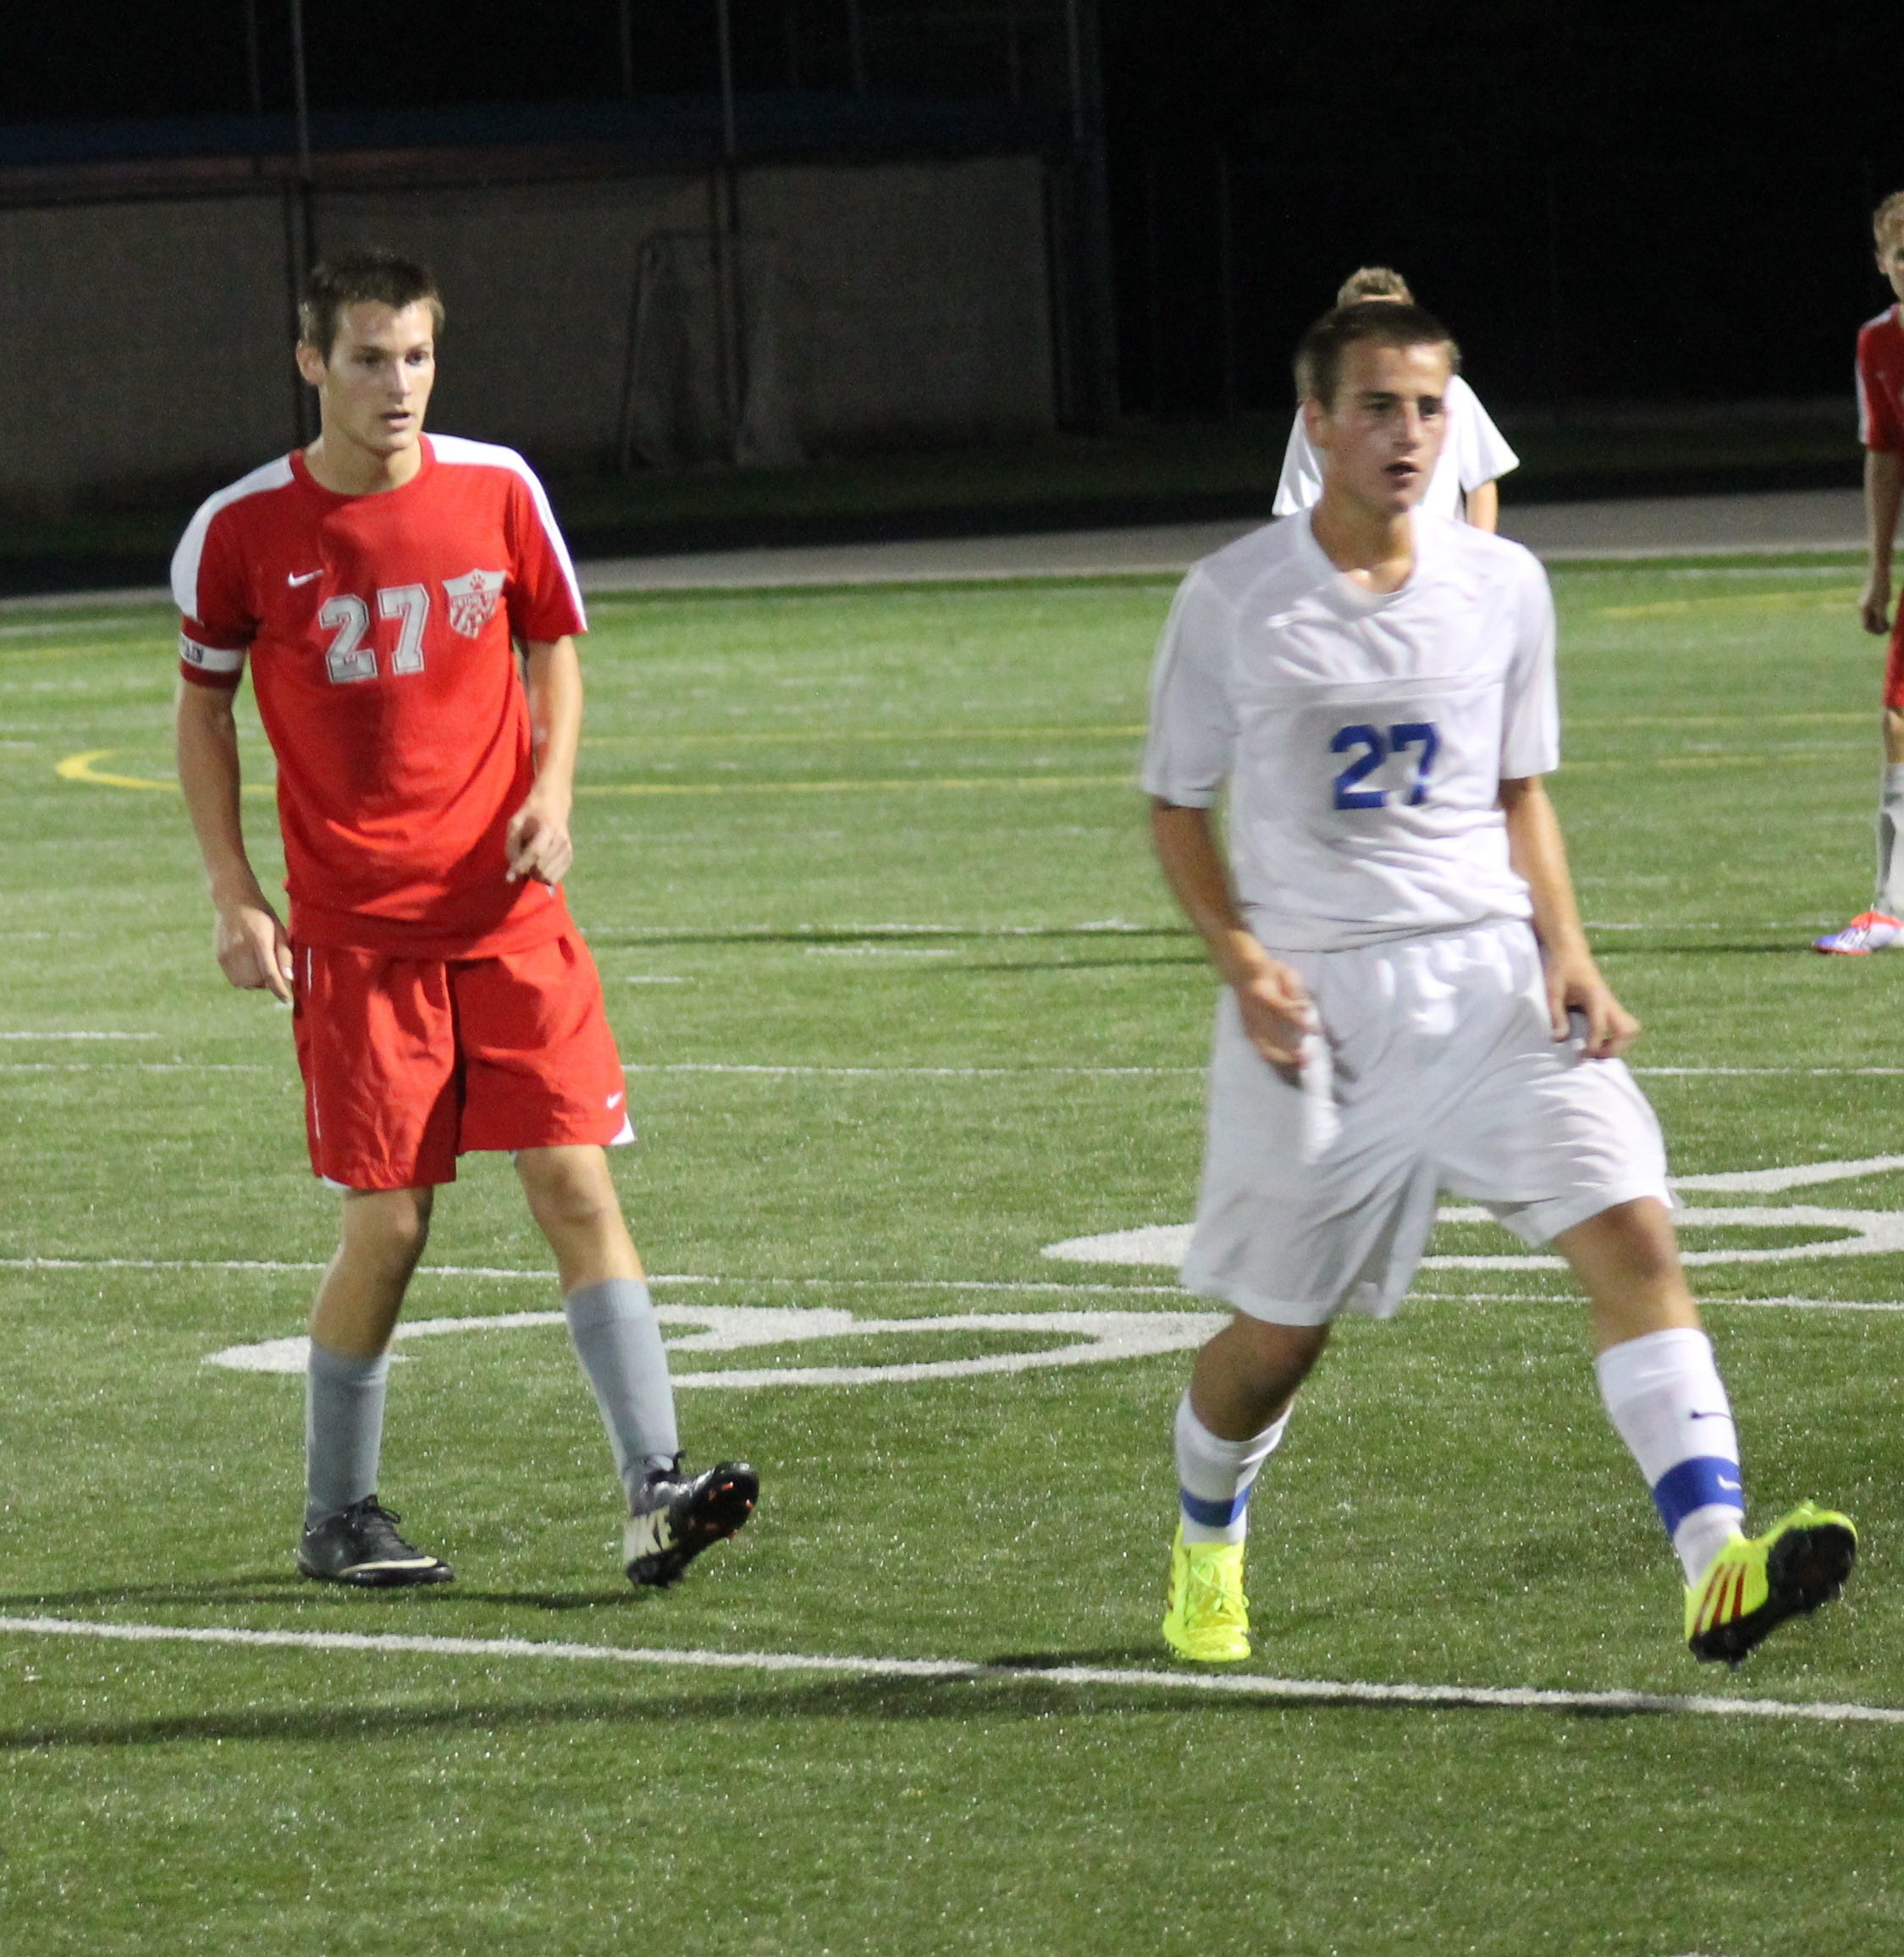 Bethel-Tate's Adam Shinkle, left, follows Zane Kuntz of Madeira Oct. 15 in the sectional tournament. The Mustangs held off the Tigers 3-2 in Bethel-Tate's season finale last fall.